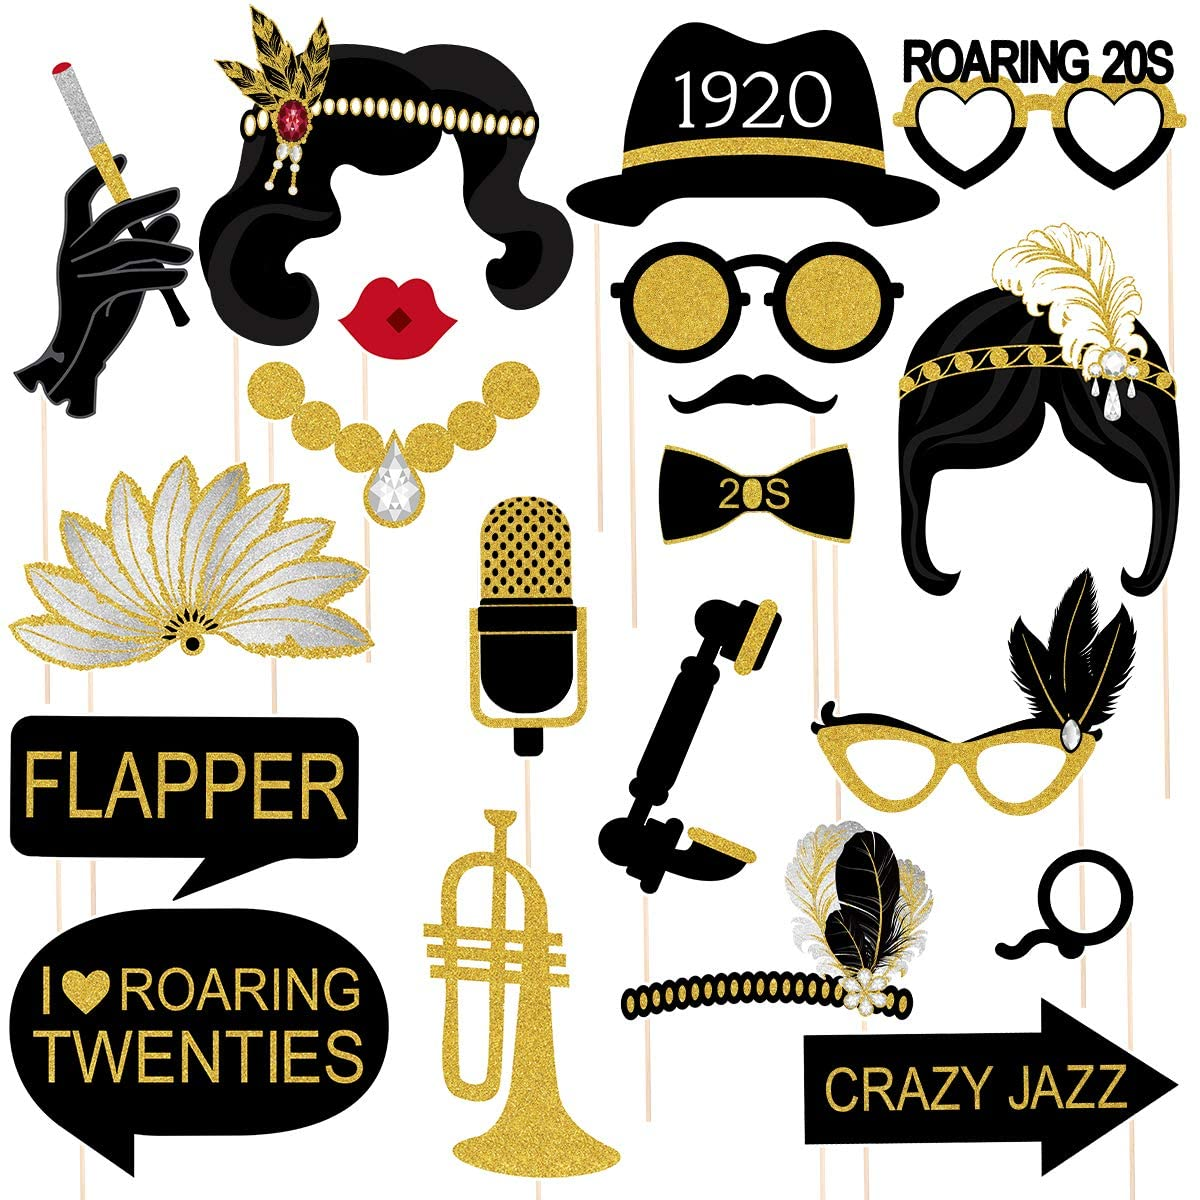 Amosfun 20PCS Twenties Art Deco Jazz Photo Booth Props 1920s Jazz Fashion Roaring 20S Party Decoration Supplies Great for Birthday, Wedding Party